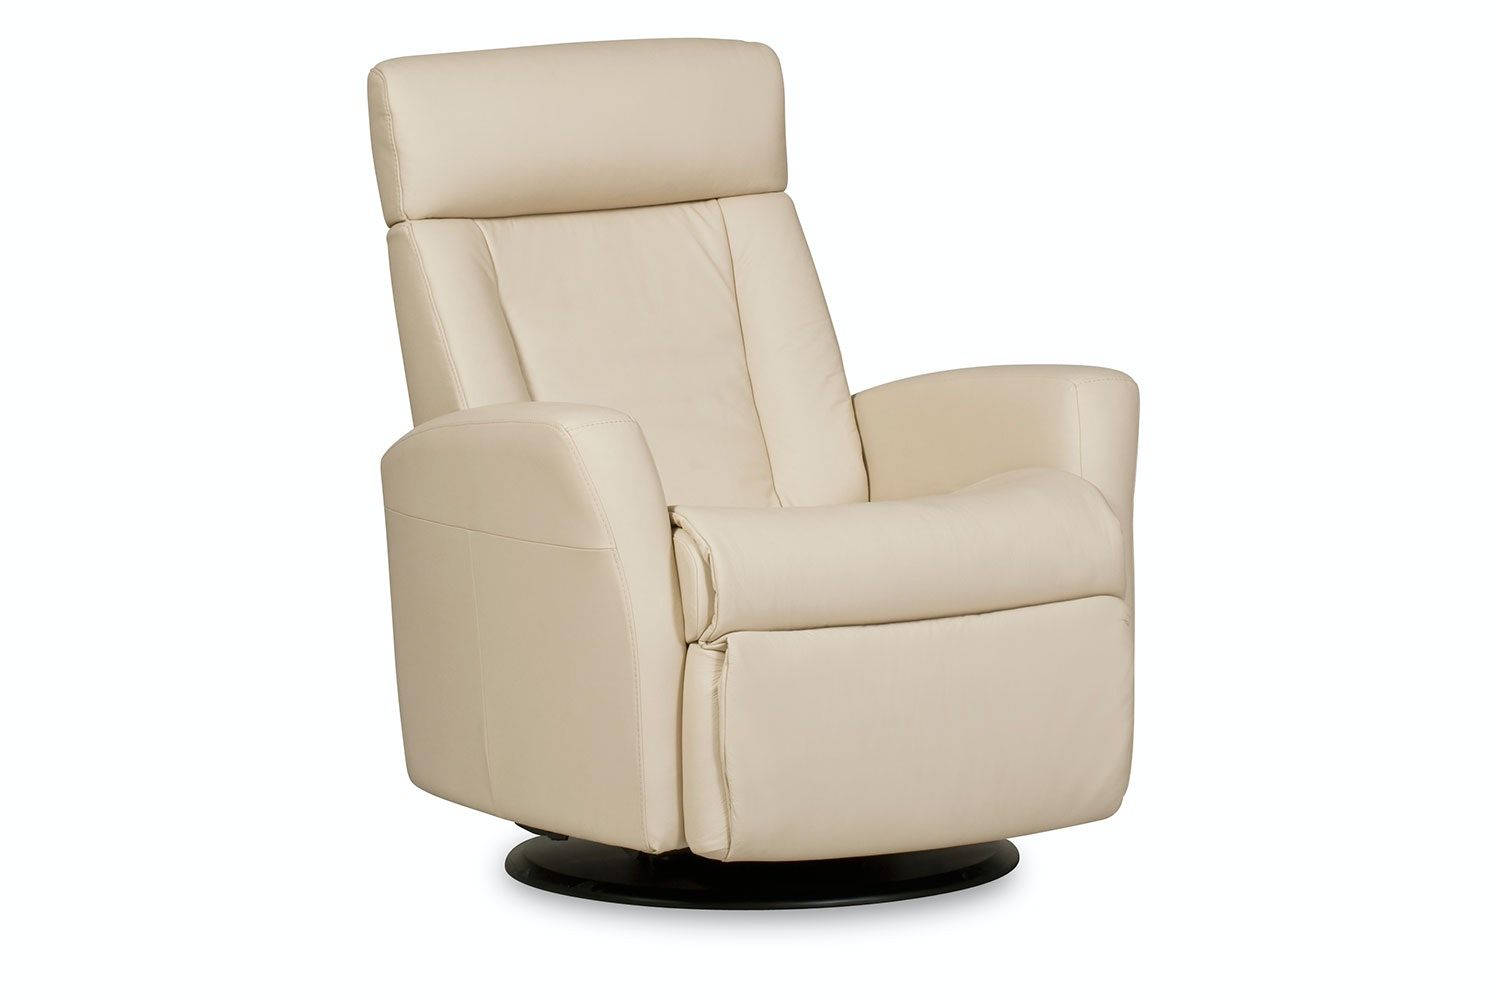 Lotus Recliner Chair Leather - Large -Trend- IMG